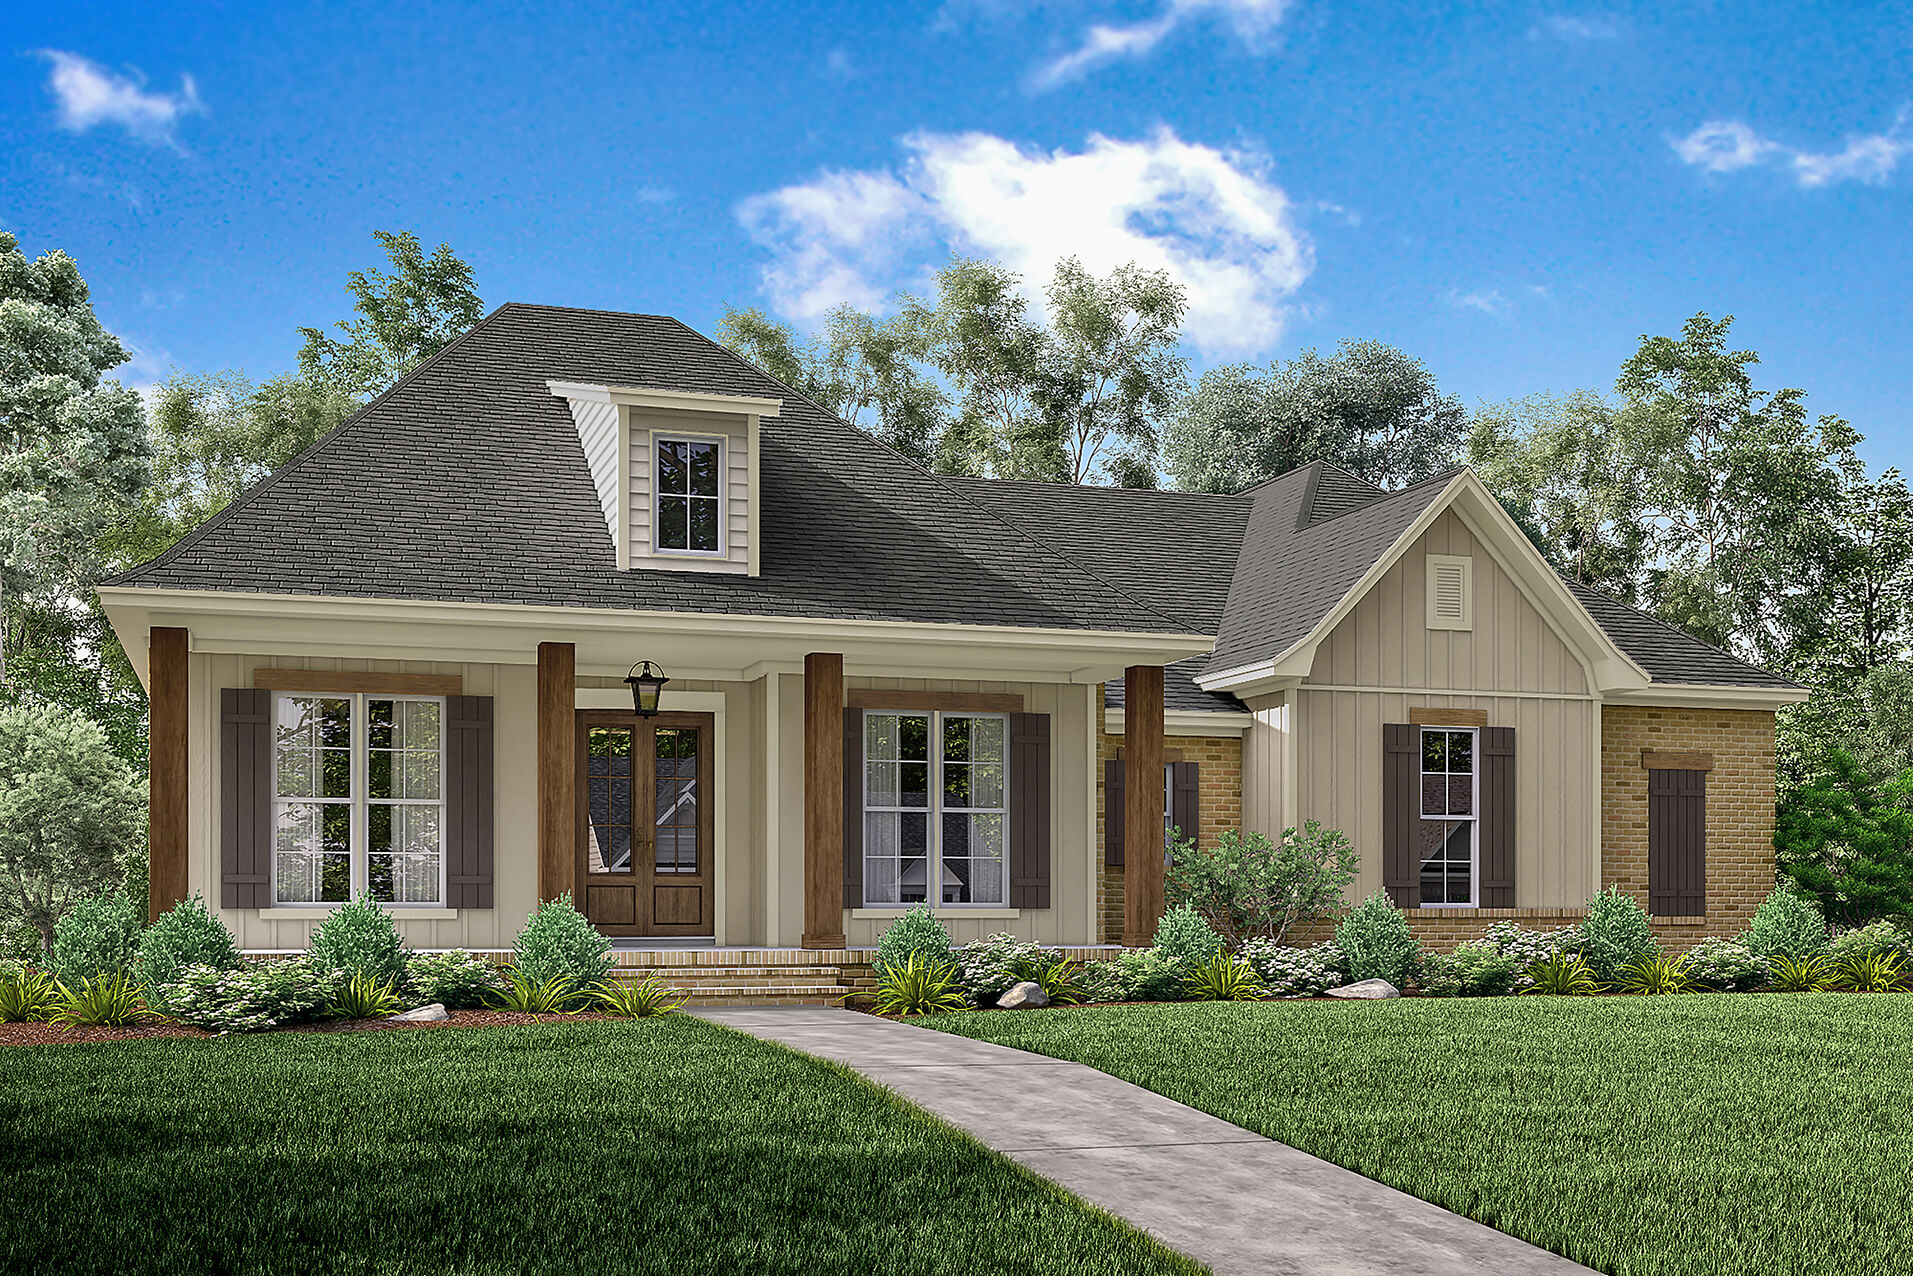 3 bedrm 1900 sq ft acadian house plan 142 1163 for House plasn